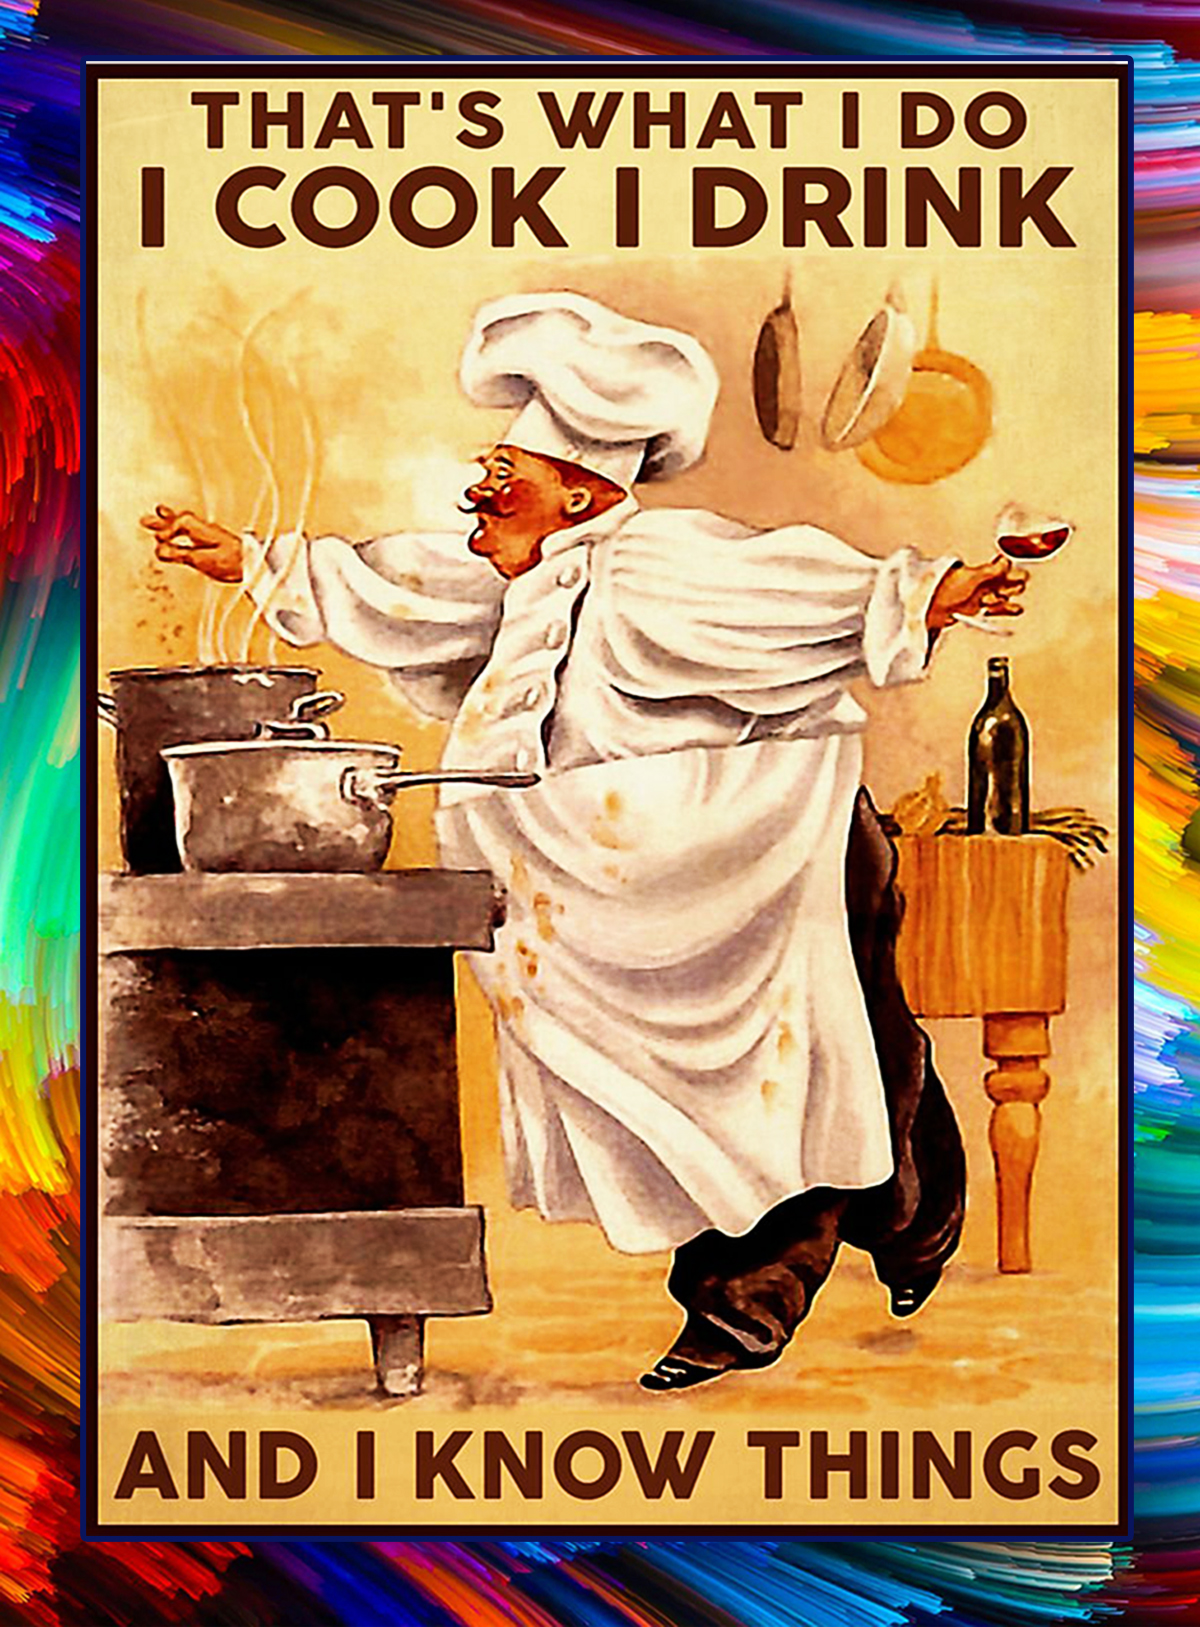 Chef that's what i do i cook i drink and i know things poster - A1